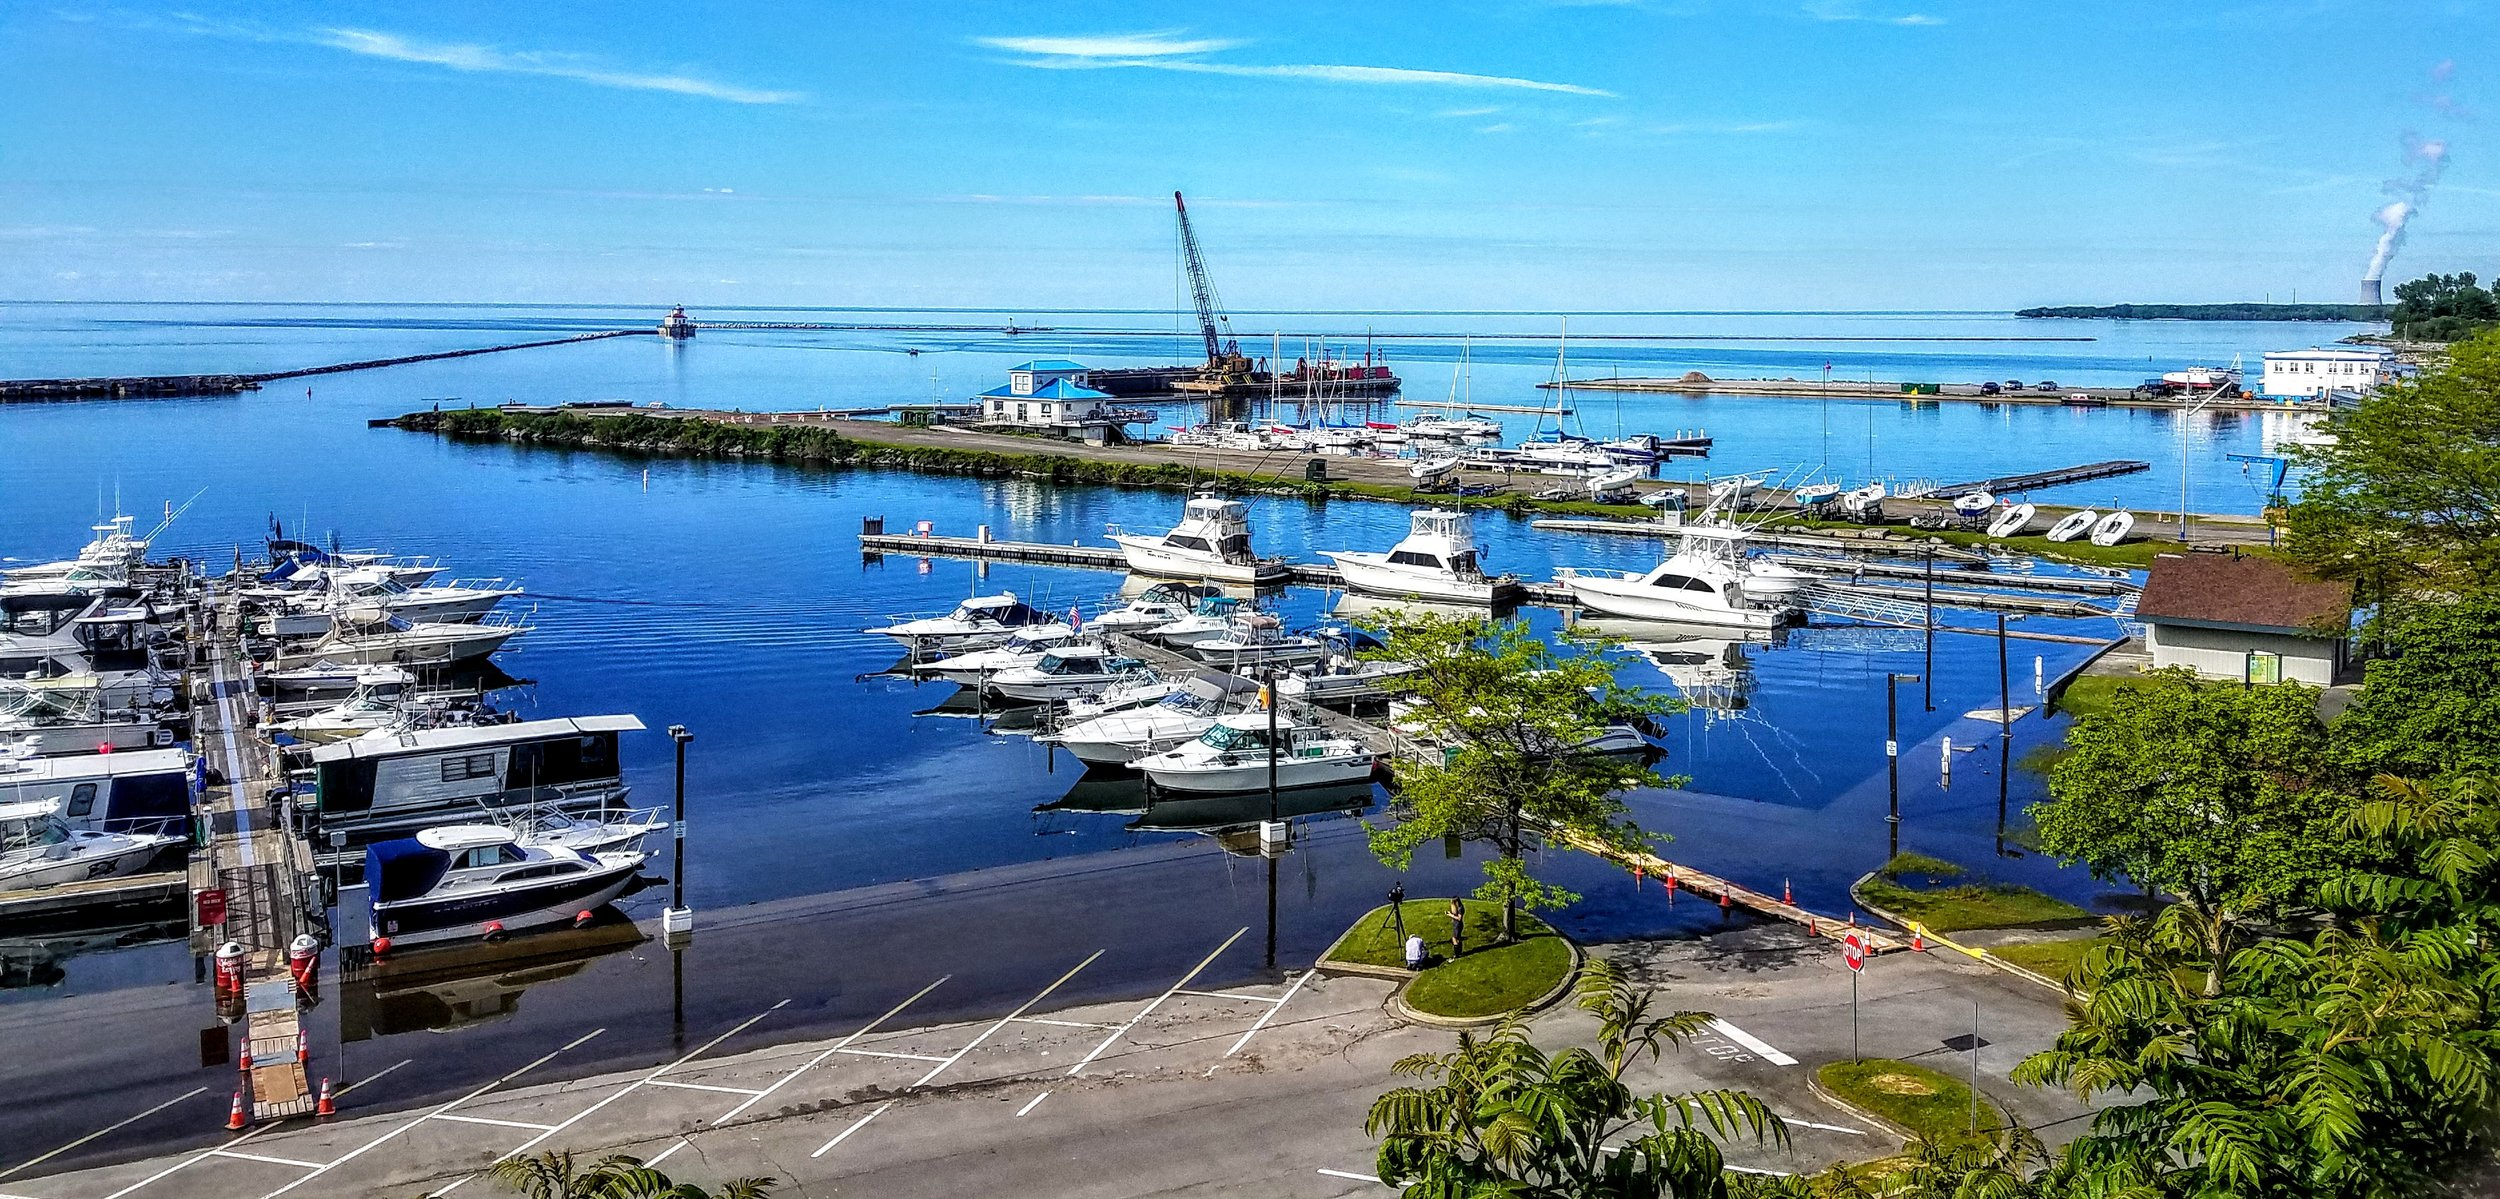 High water is still evident at the Oswego International Marina.  Lake Ontario beyond looks nice and flat…we hope for similar conditions for our crossing tomorrow.